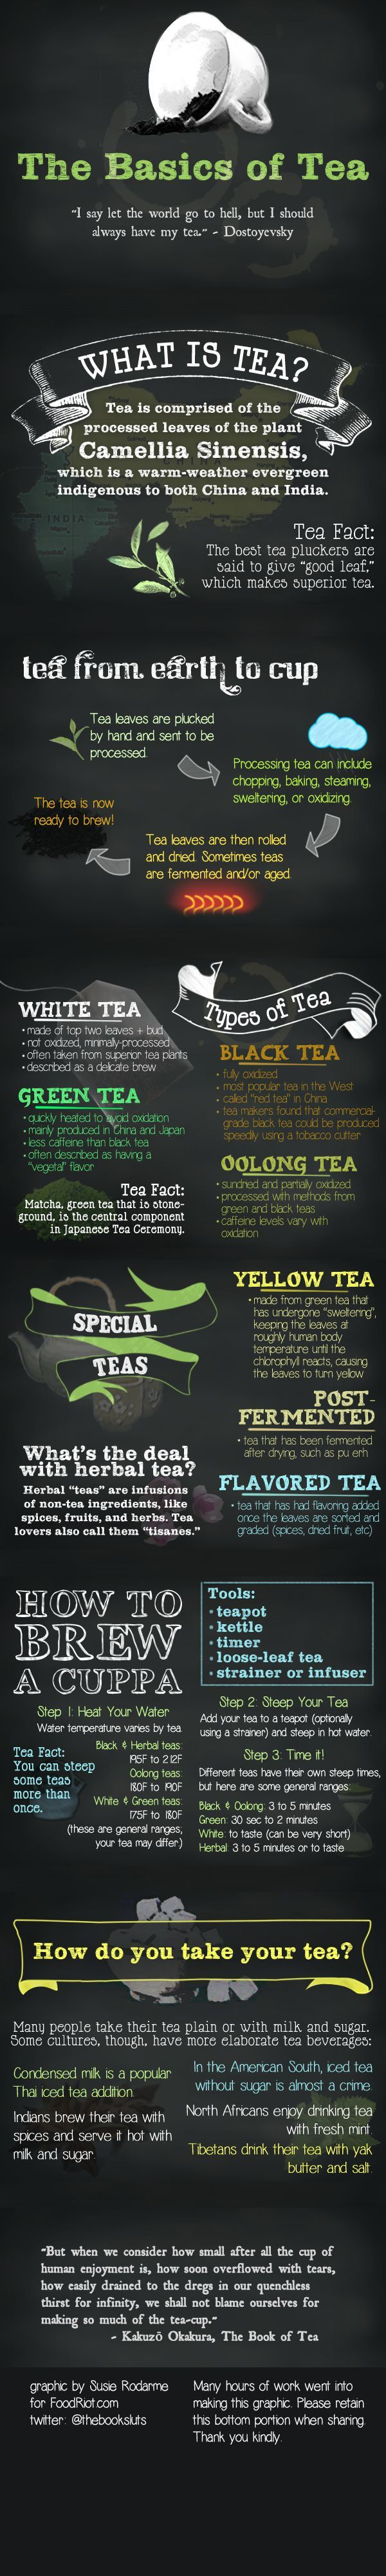 The history of tea is rich and complex. Tea is multicultural and has roots in almost every culture around the word.